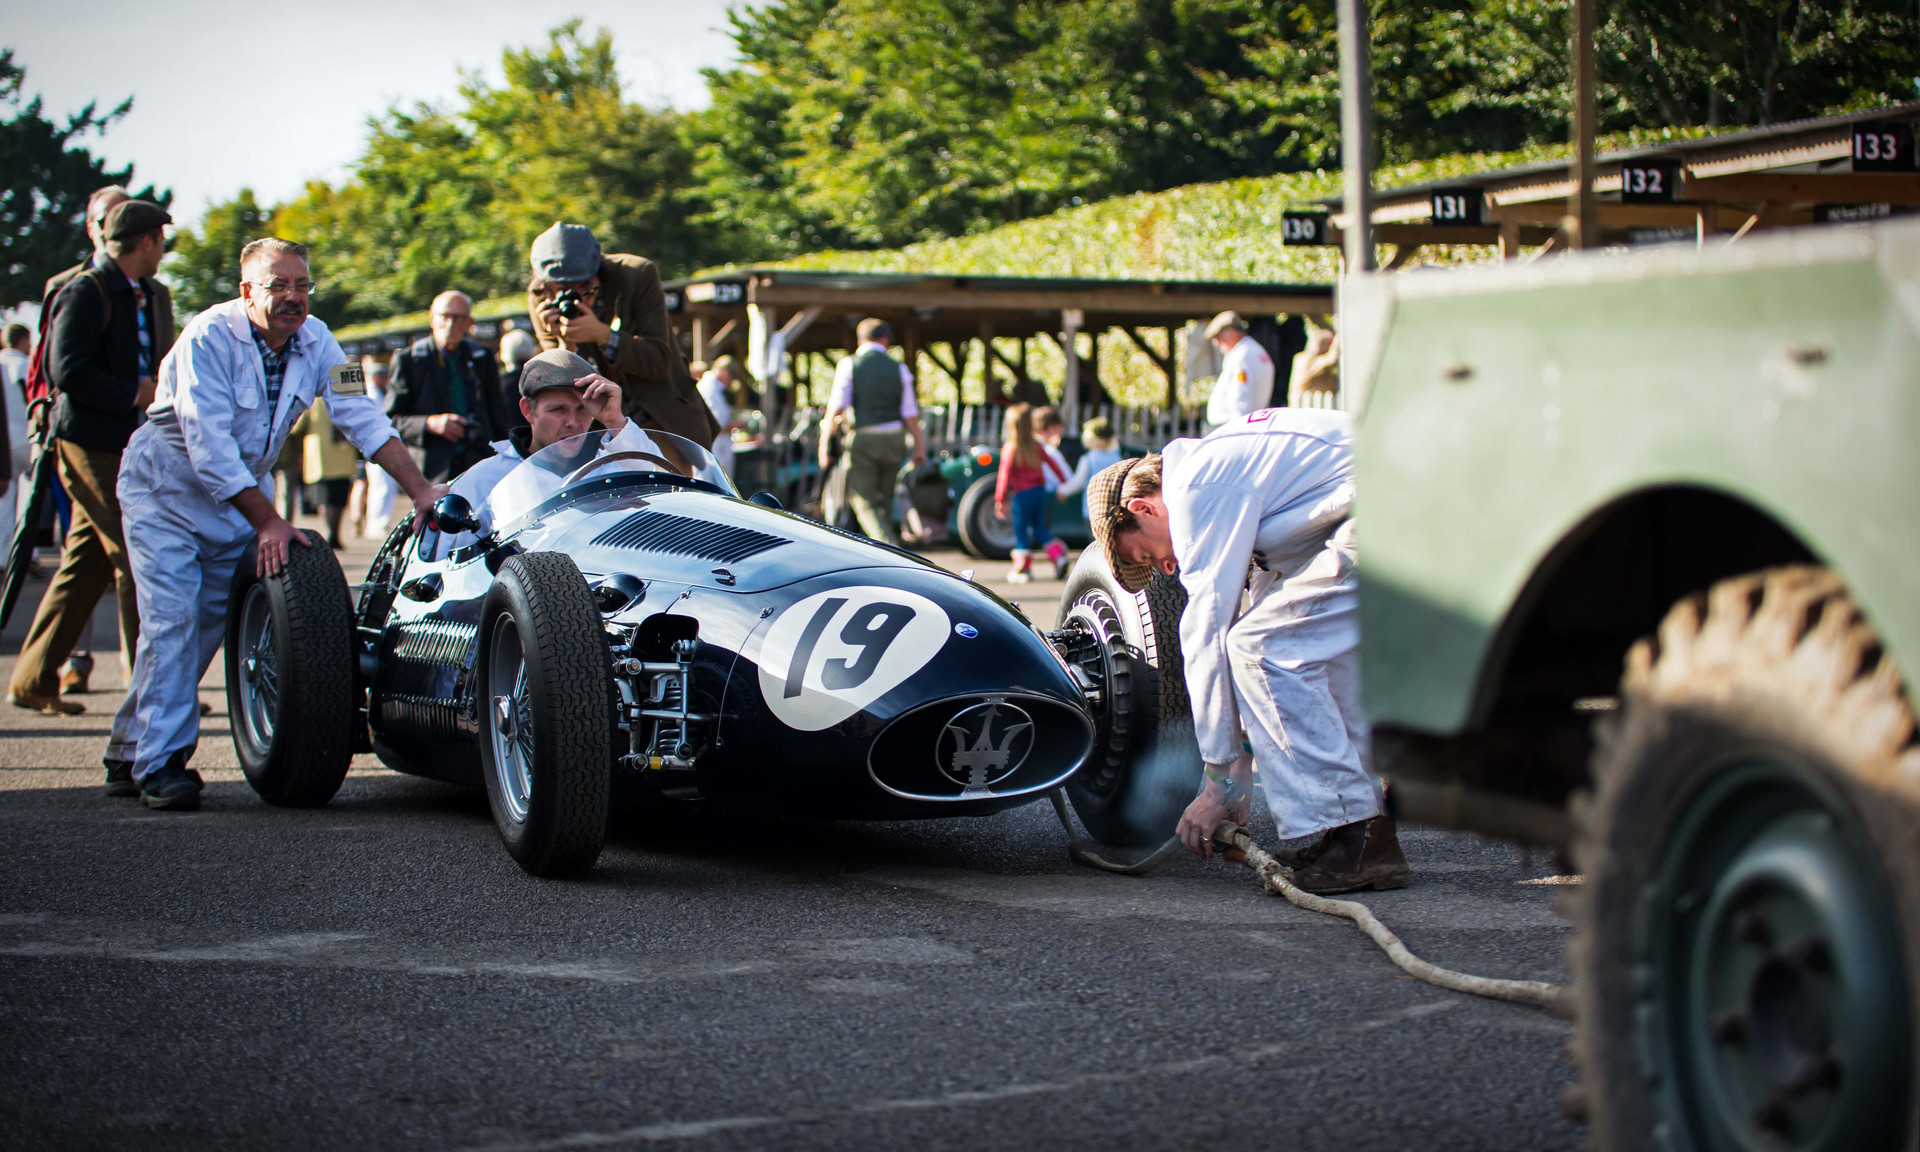 Christian Glaesel & Gary Pearson's 1954 Maserati 250F at the 2017 Goodwood Revival